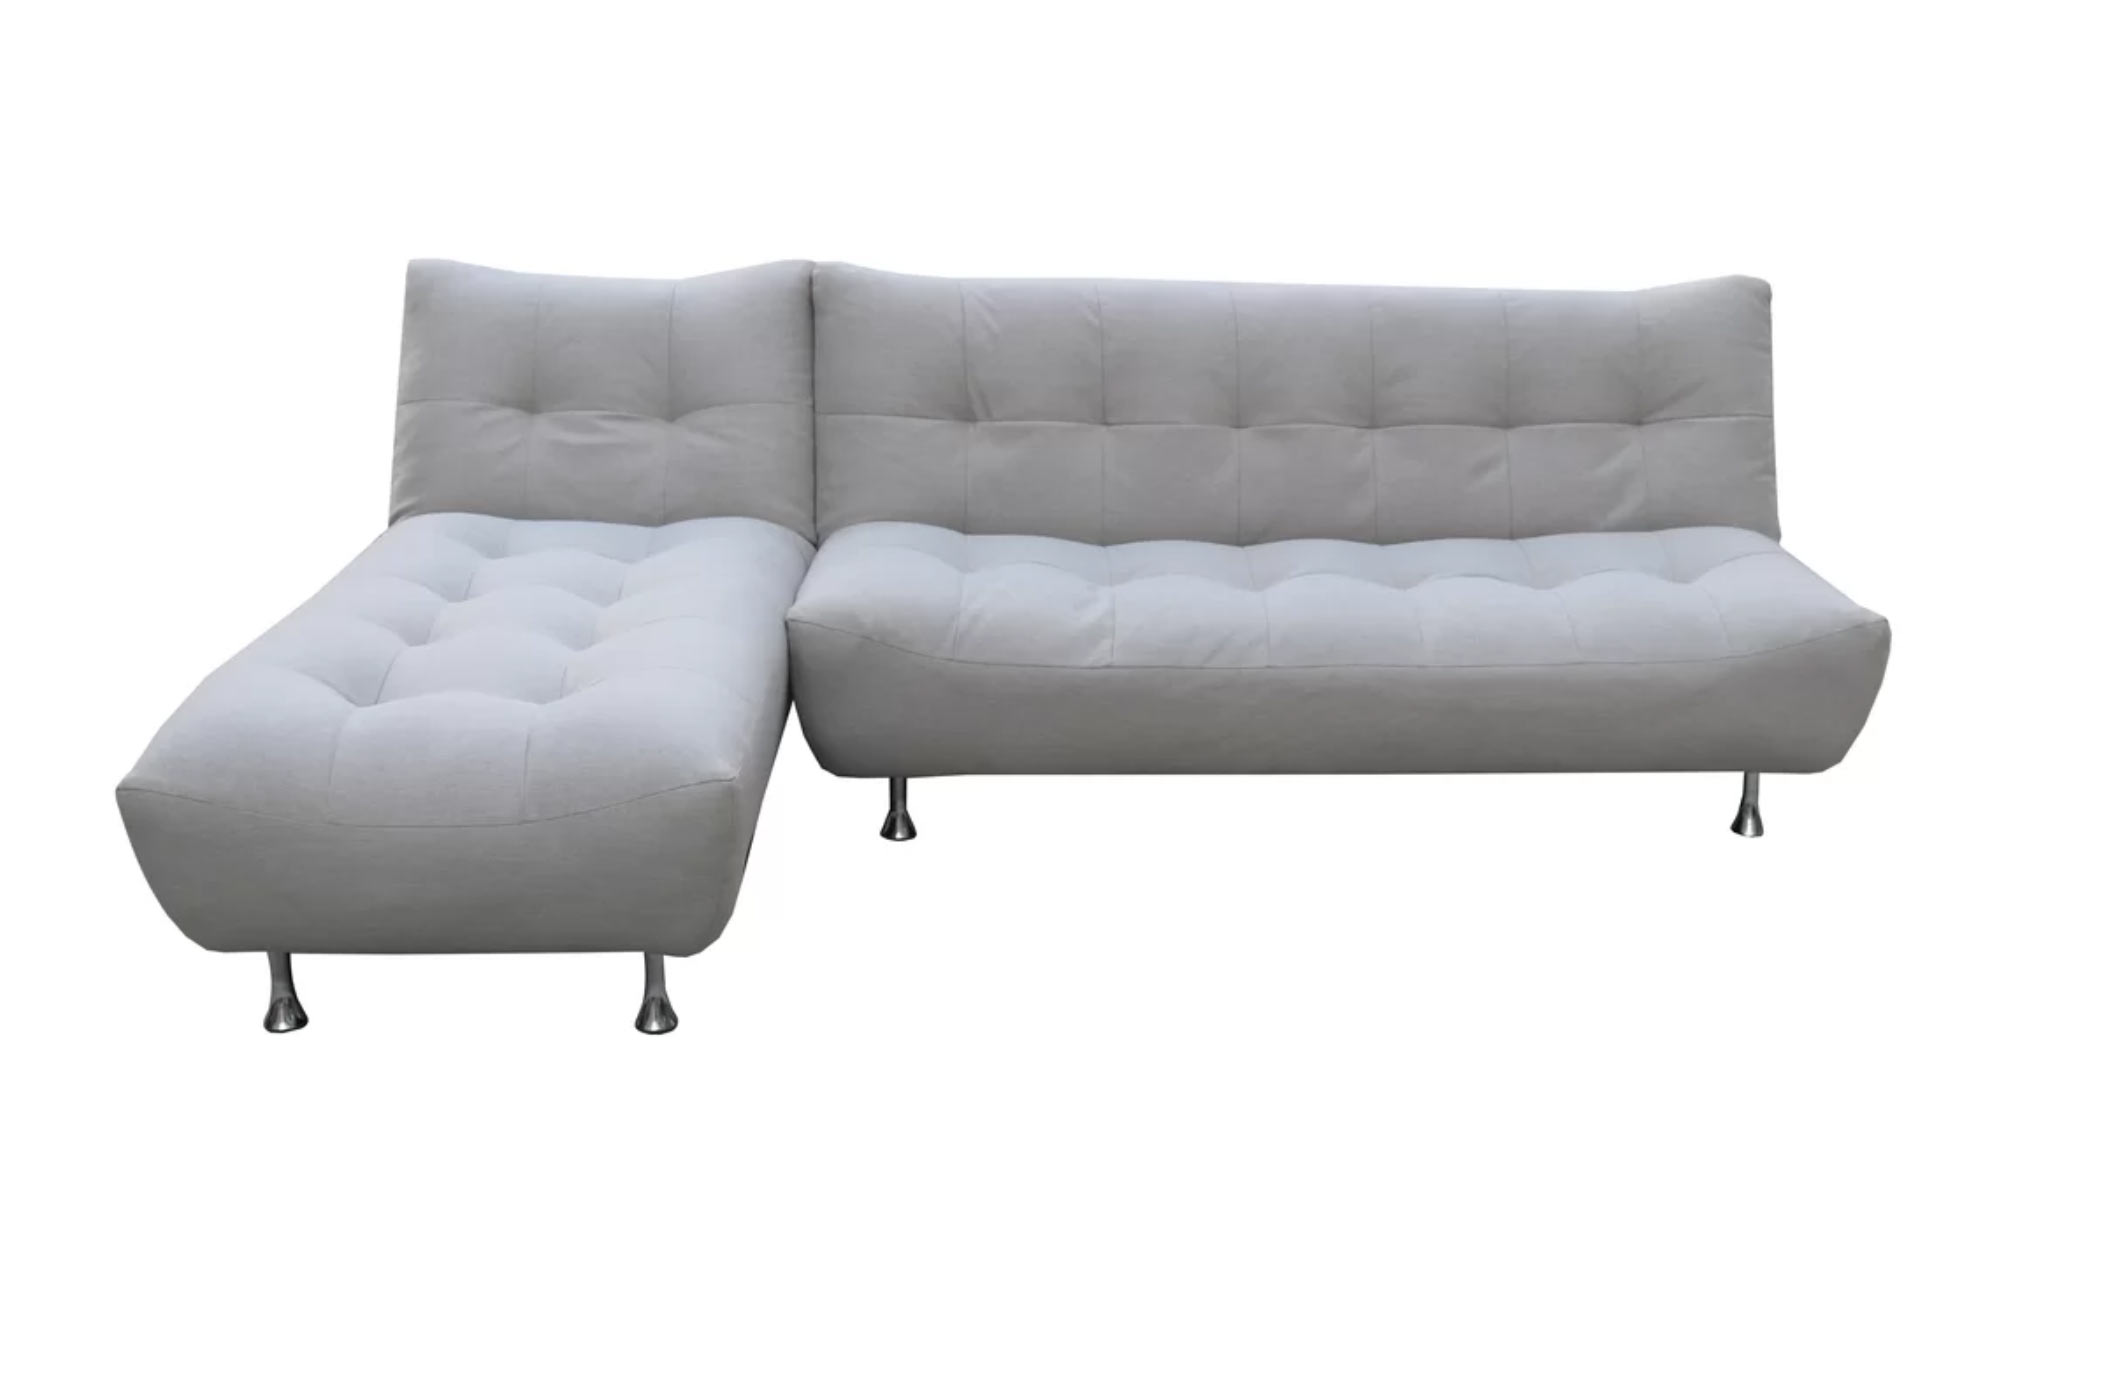 Cloud Sandstone Gray Sofa Bed W/Optional Chaise